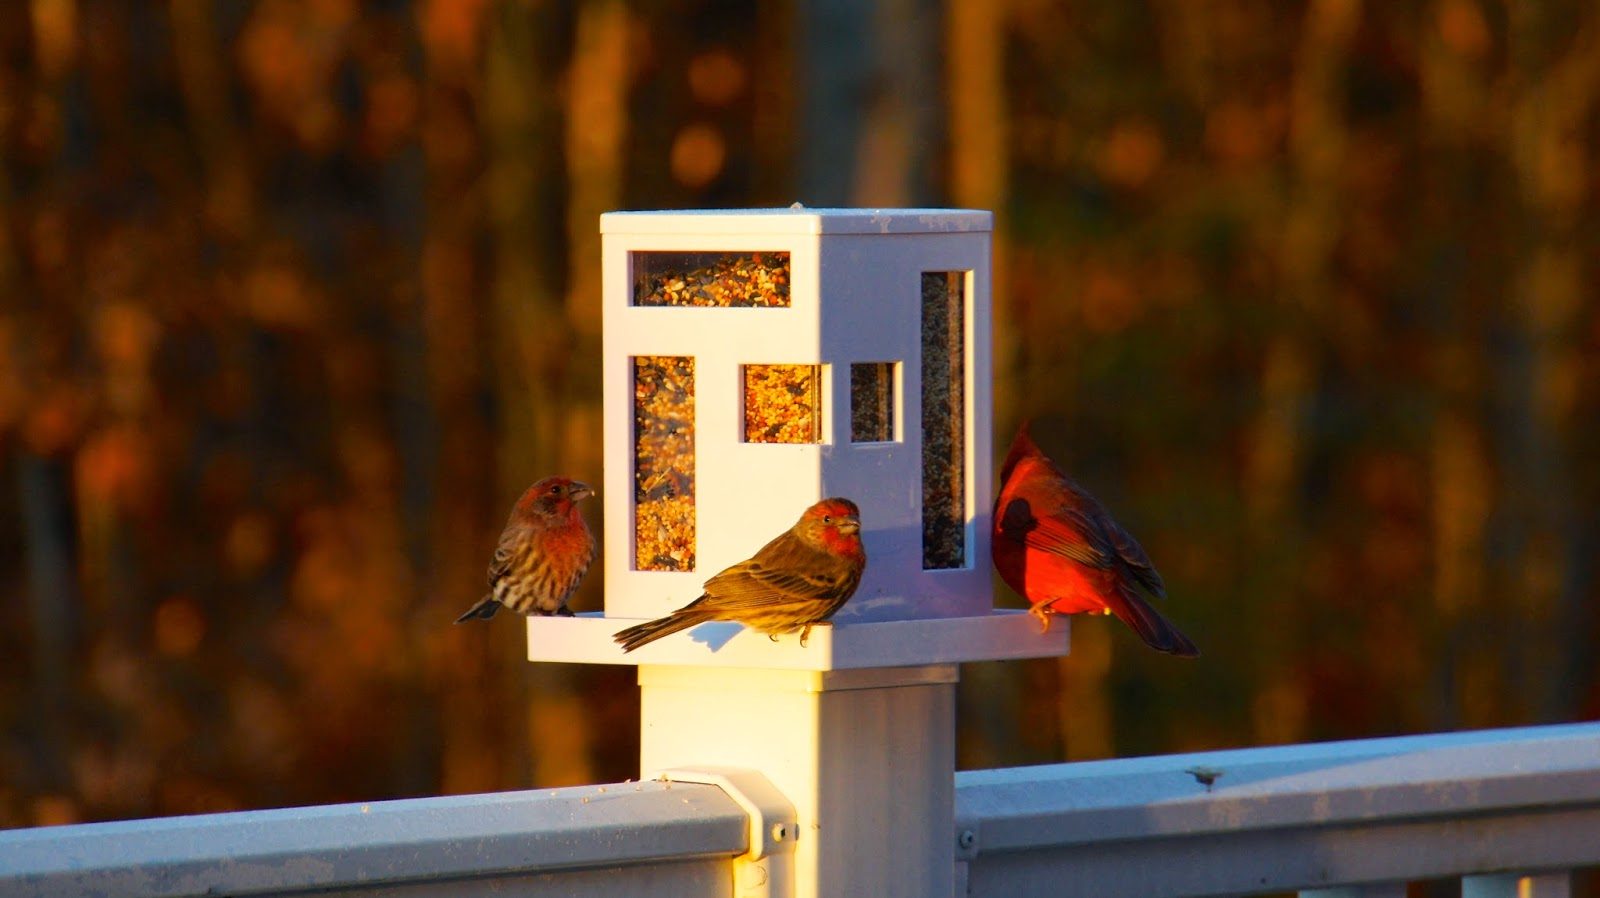 food fashion home modern bird feeder update - last november we decided it was time to bring some colorful wildlife witha modern bird feeder to the back deck during the cold months and boy didit